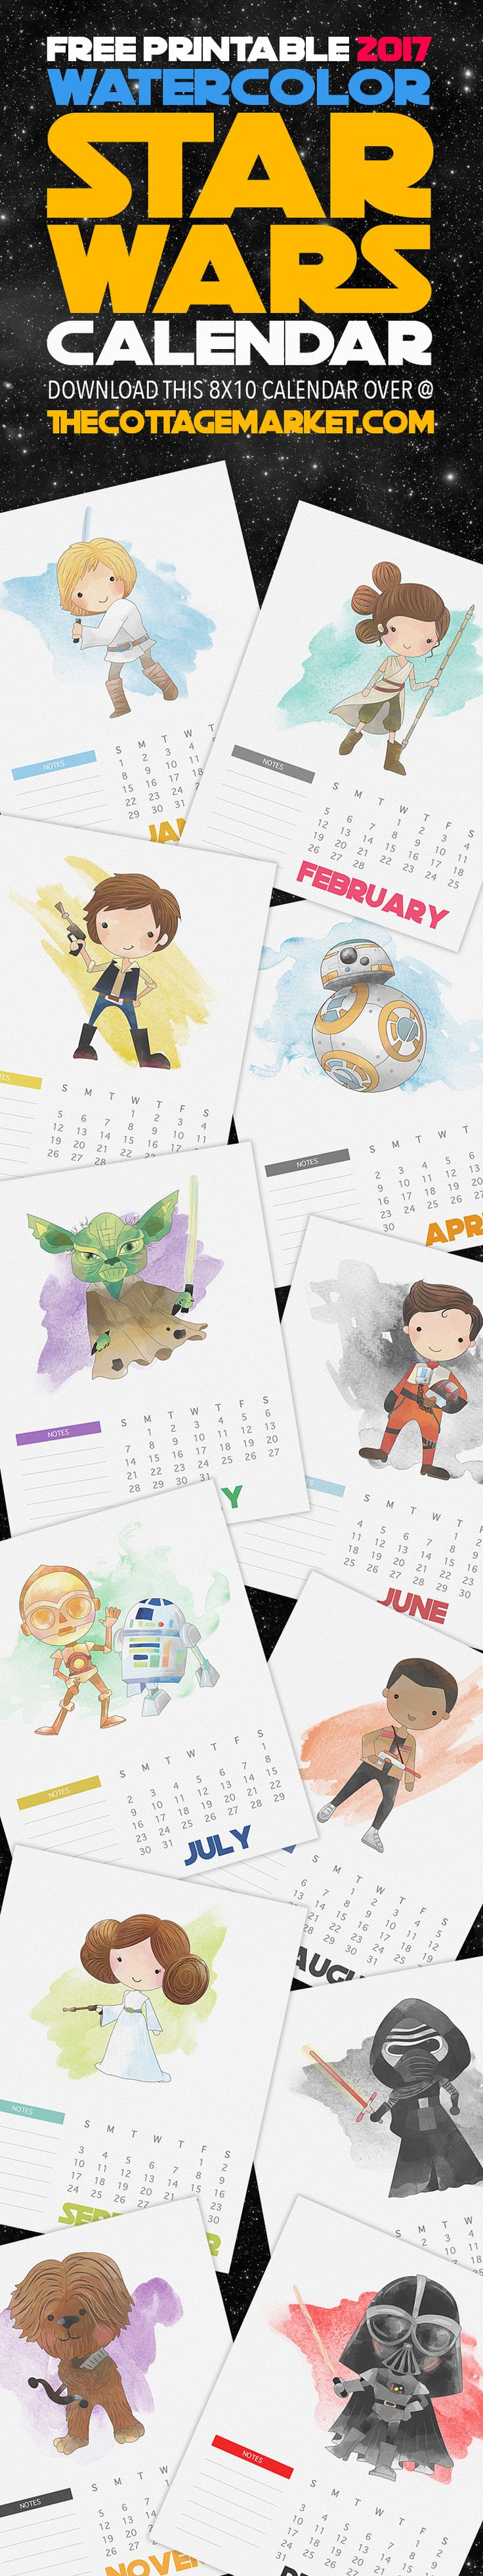 FREE Printable 2017 WATERCOLOR Star Wars Calendar!